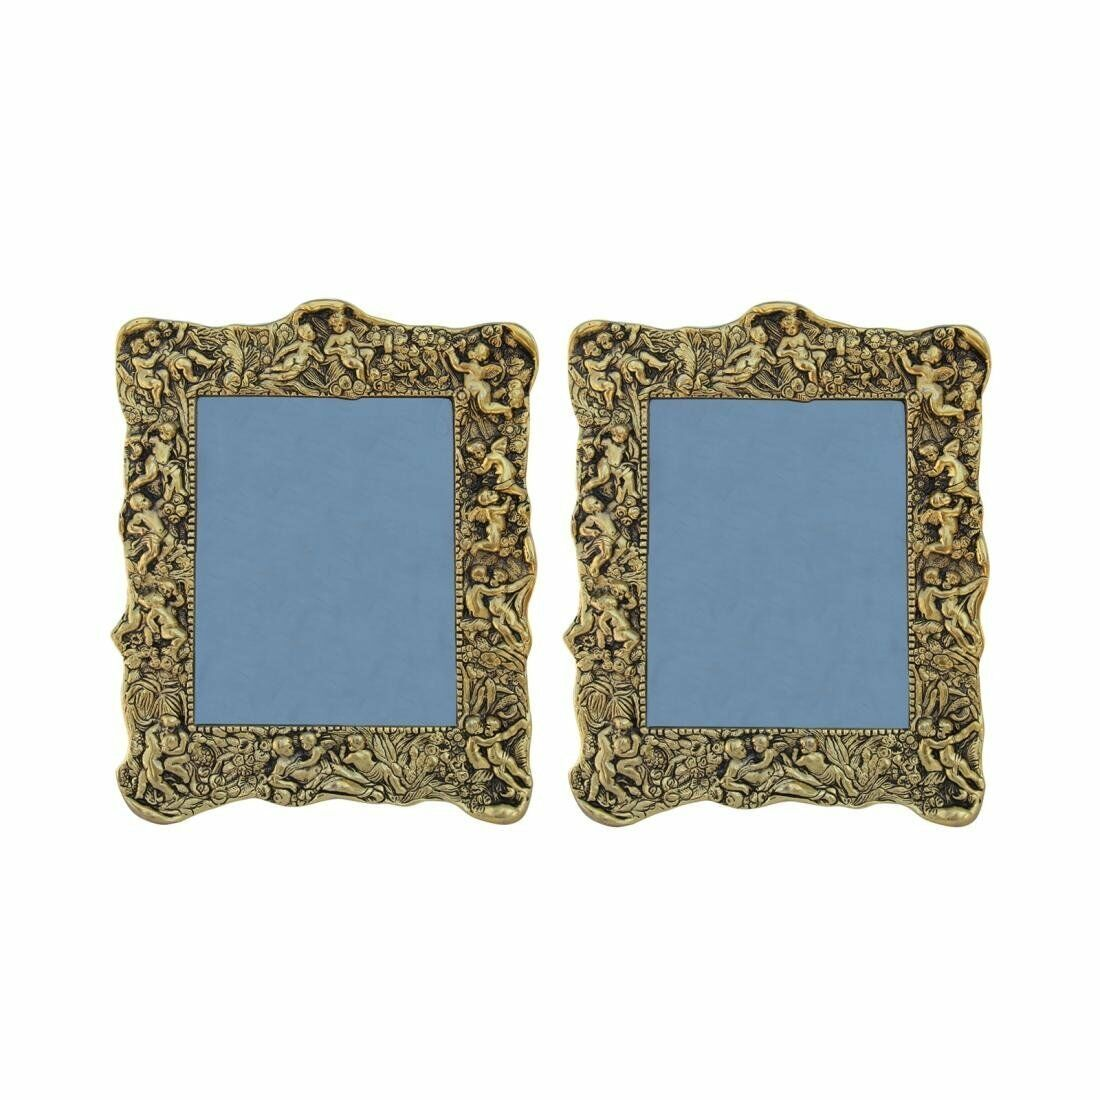 Photo Frame Pair Antique Golden with Intricate Carving in Metal by Paradise